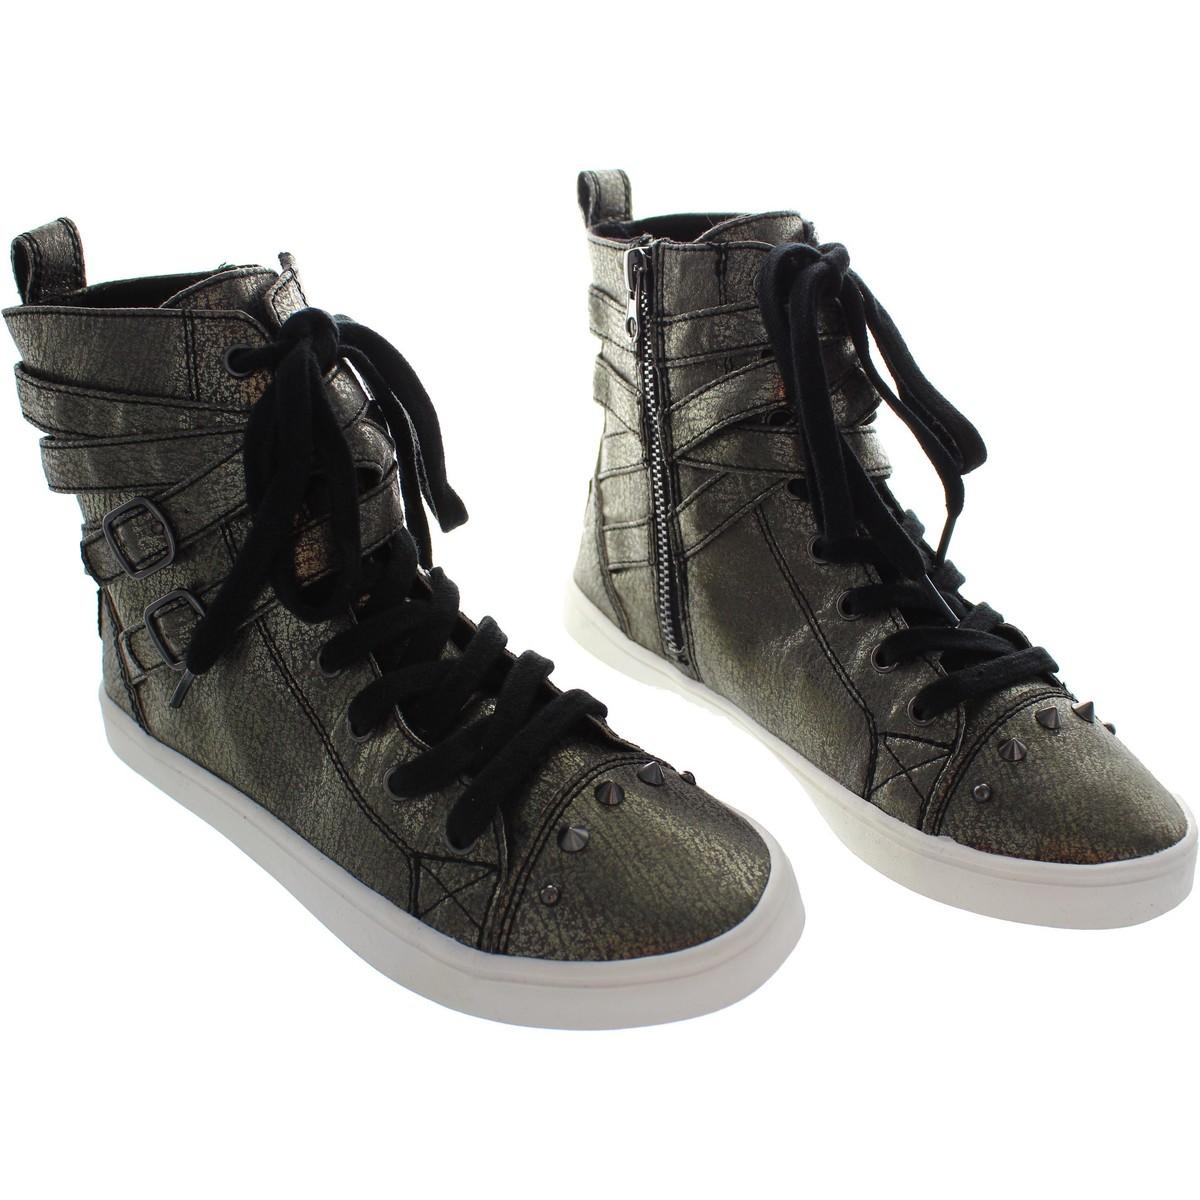 Rocket Dog Darts Rumbled Women's Shoes (high-top Trainers) In Silver in Metallic